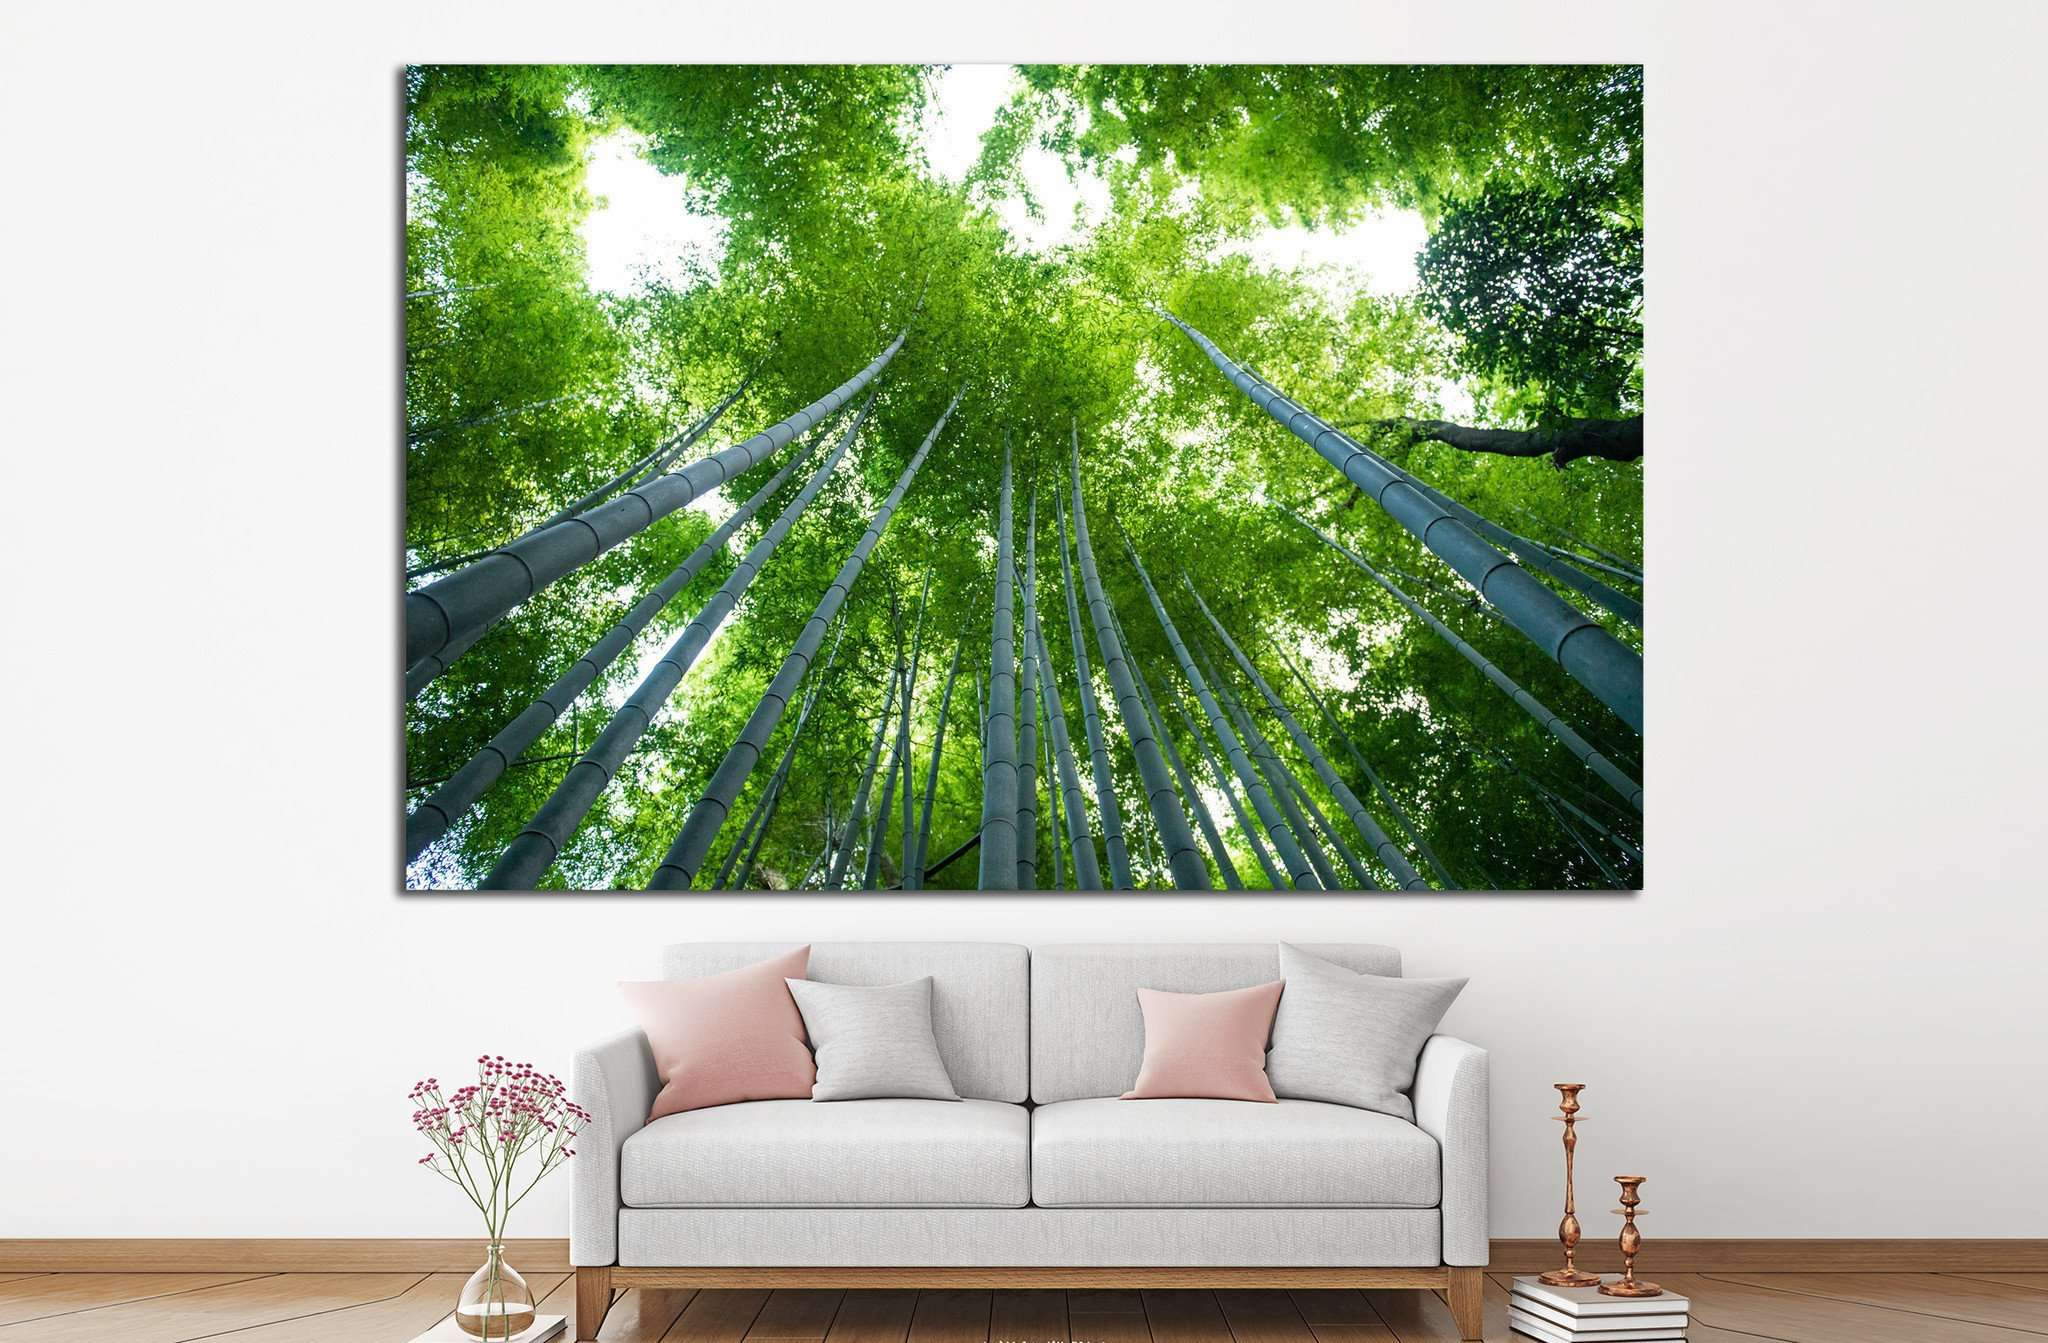 Bamboo forest, Kyoto, Japan №18 Ready to Hang Canvas Print